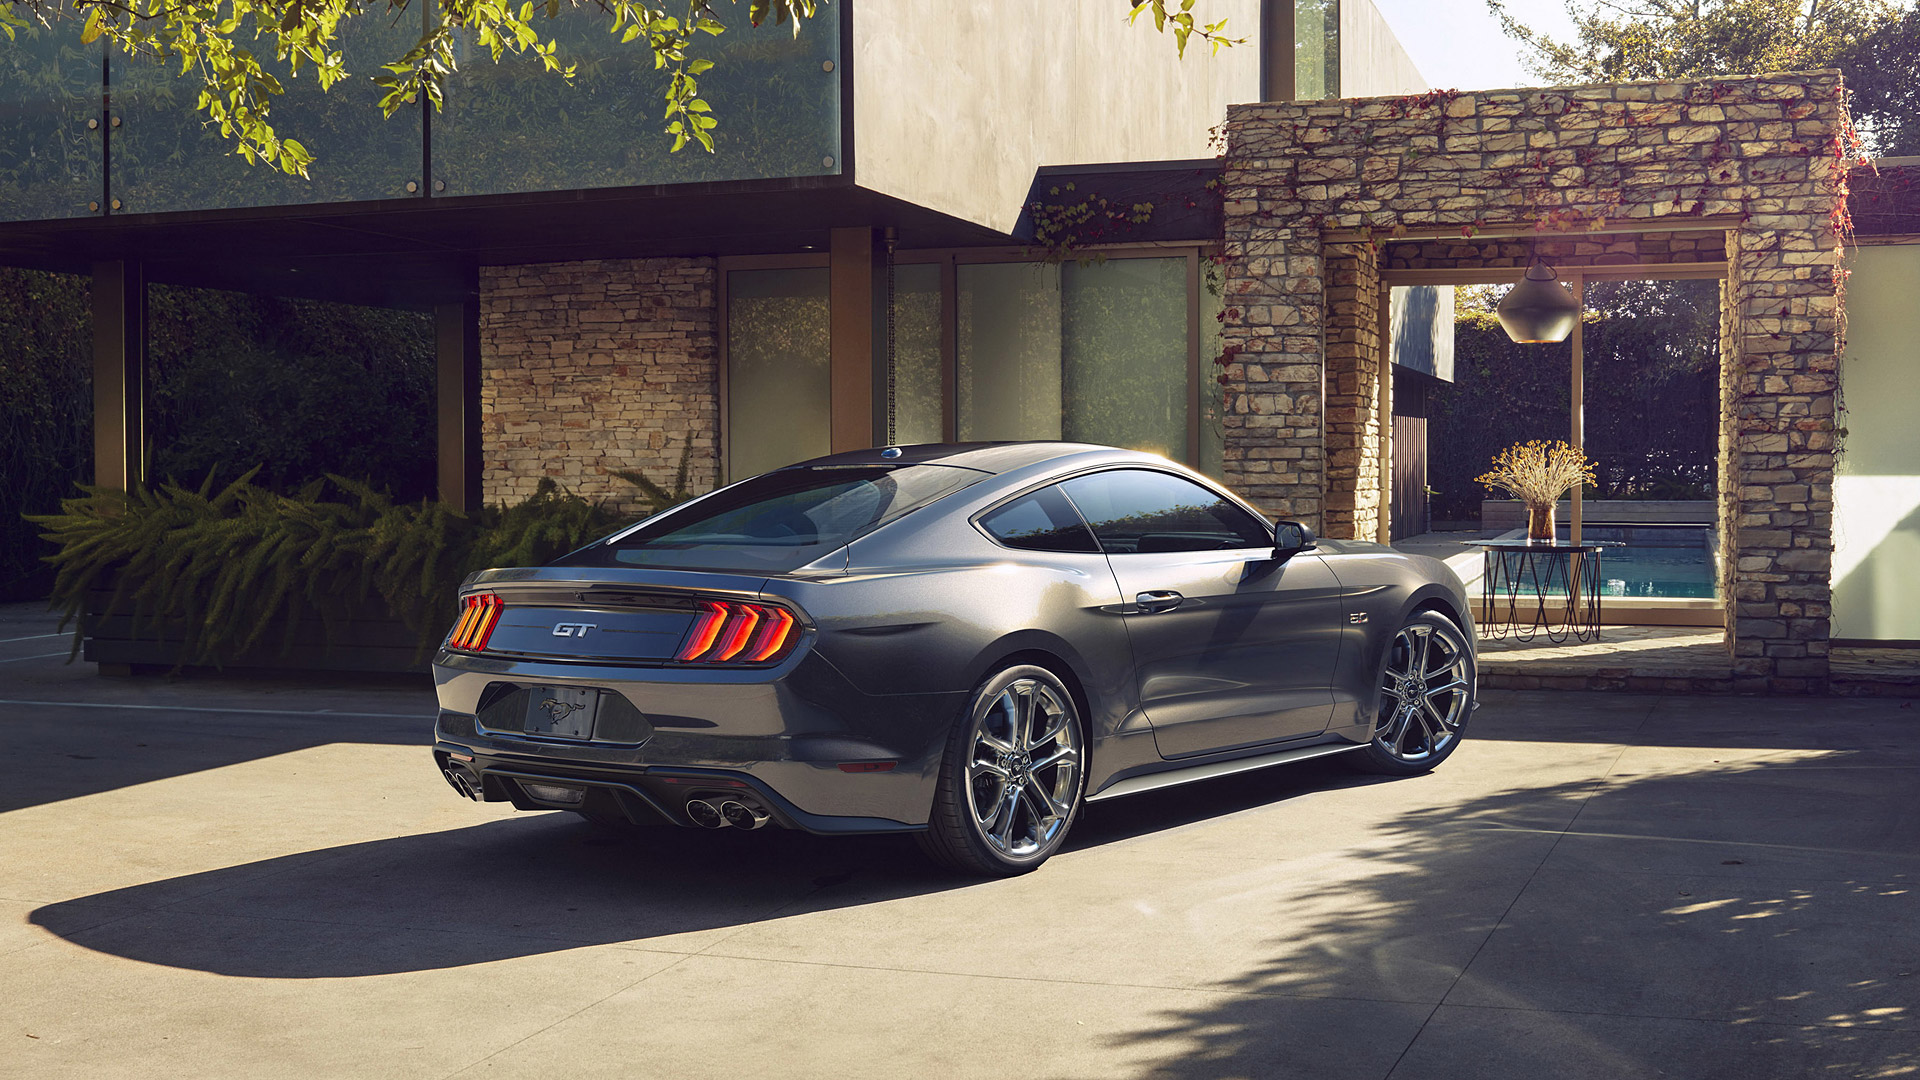 1920x1080 - Ford Mustang GT Wallpapers 13